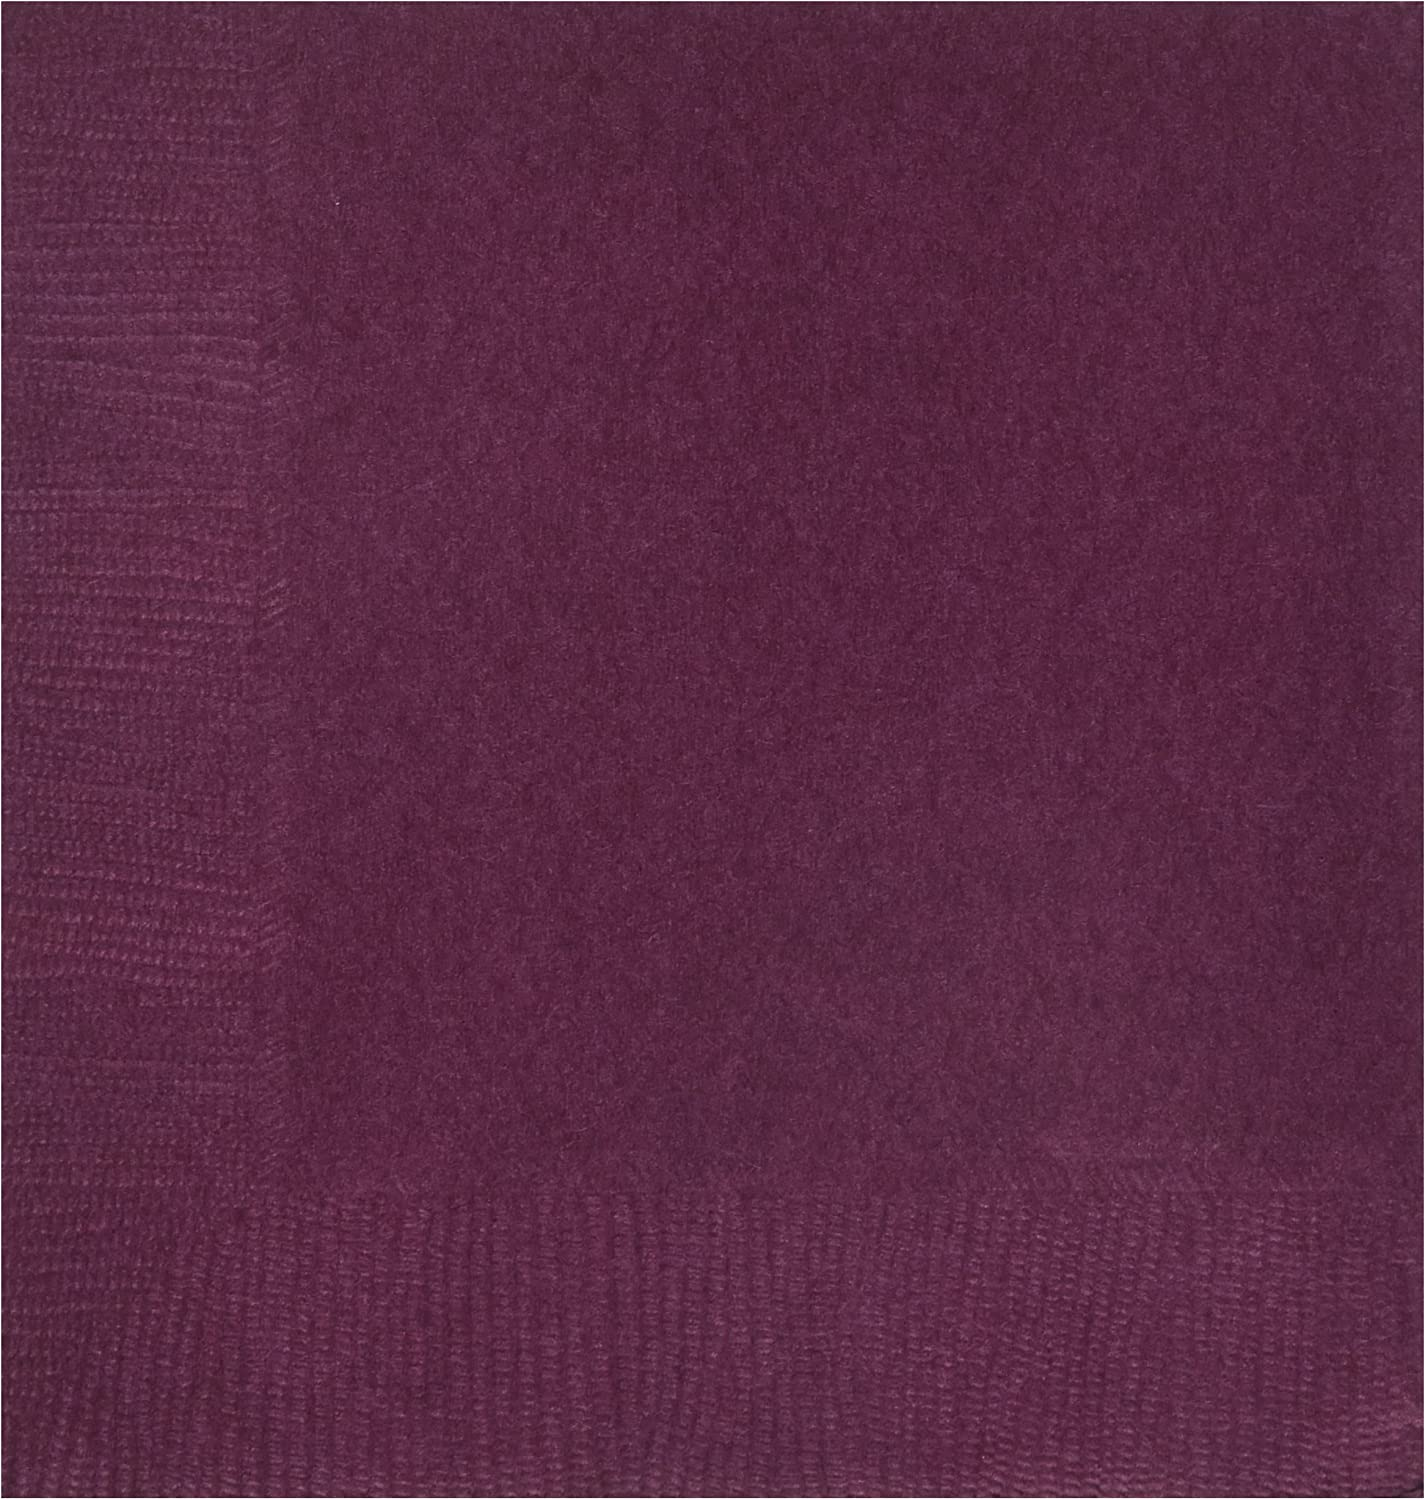 Berry 3-Ply Beverage Napkins   Party Supply   240 ct.